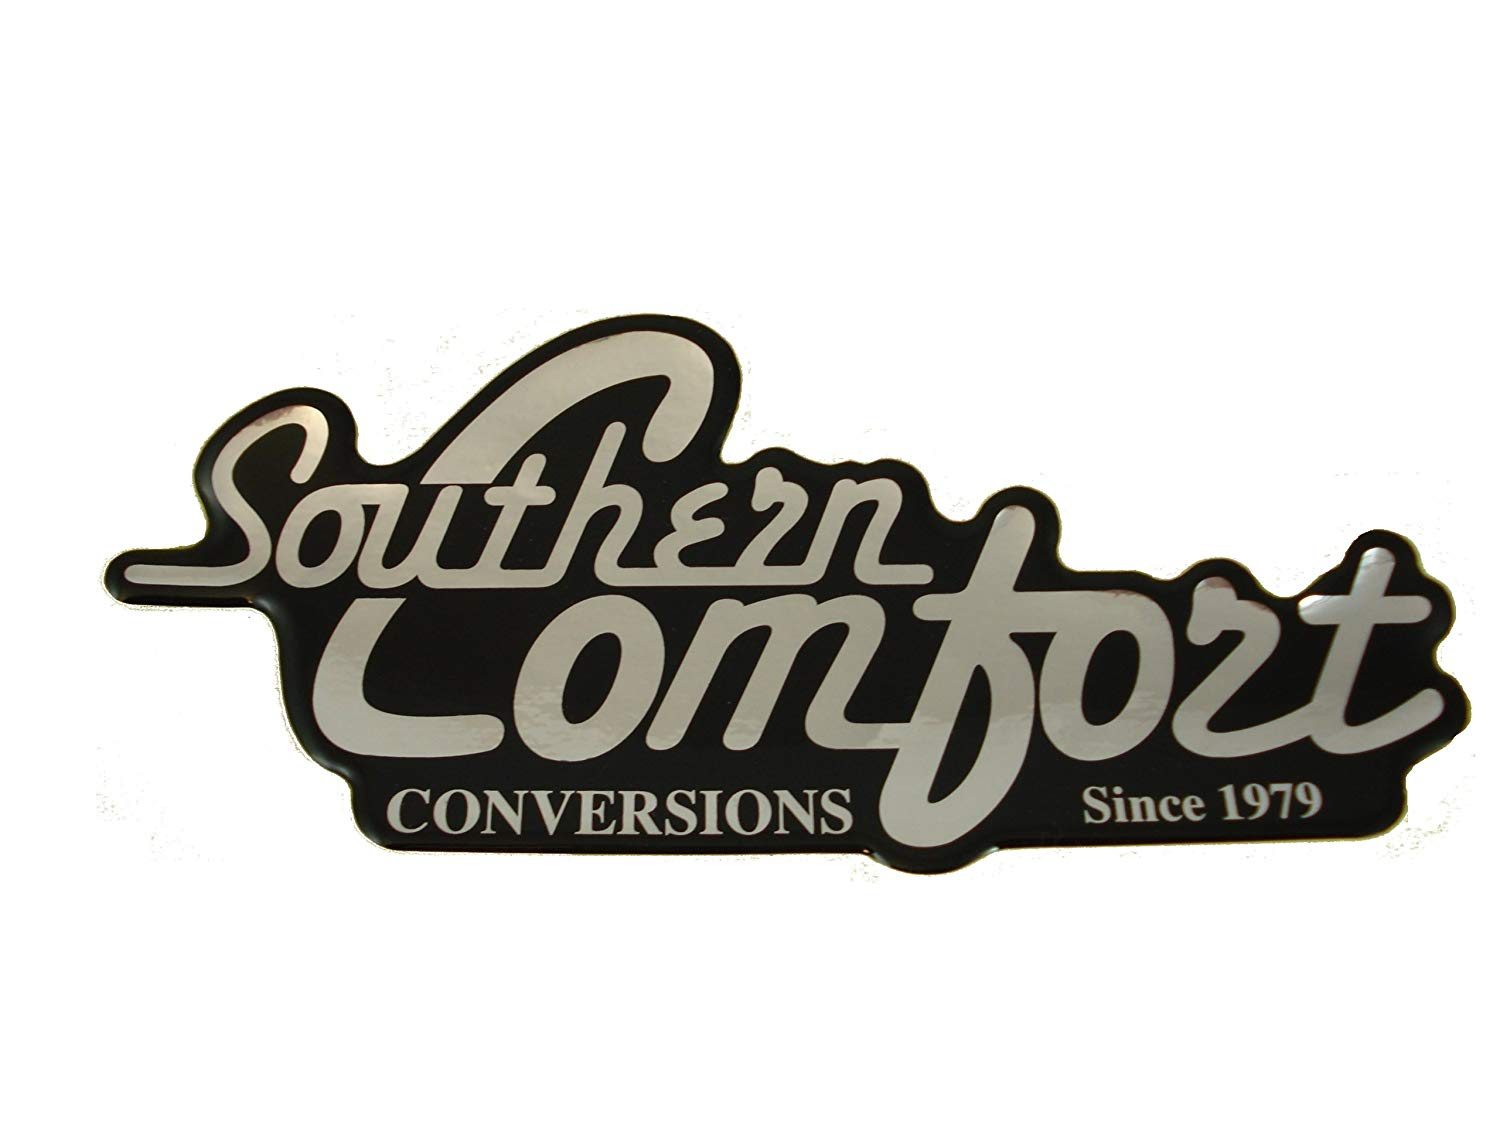 Southern Comfort Conversions Script Decal (Silver/Black.